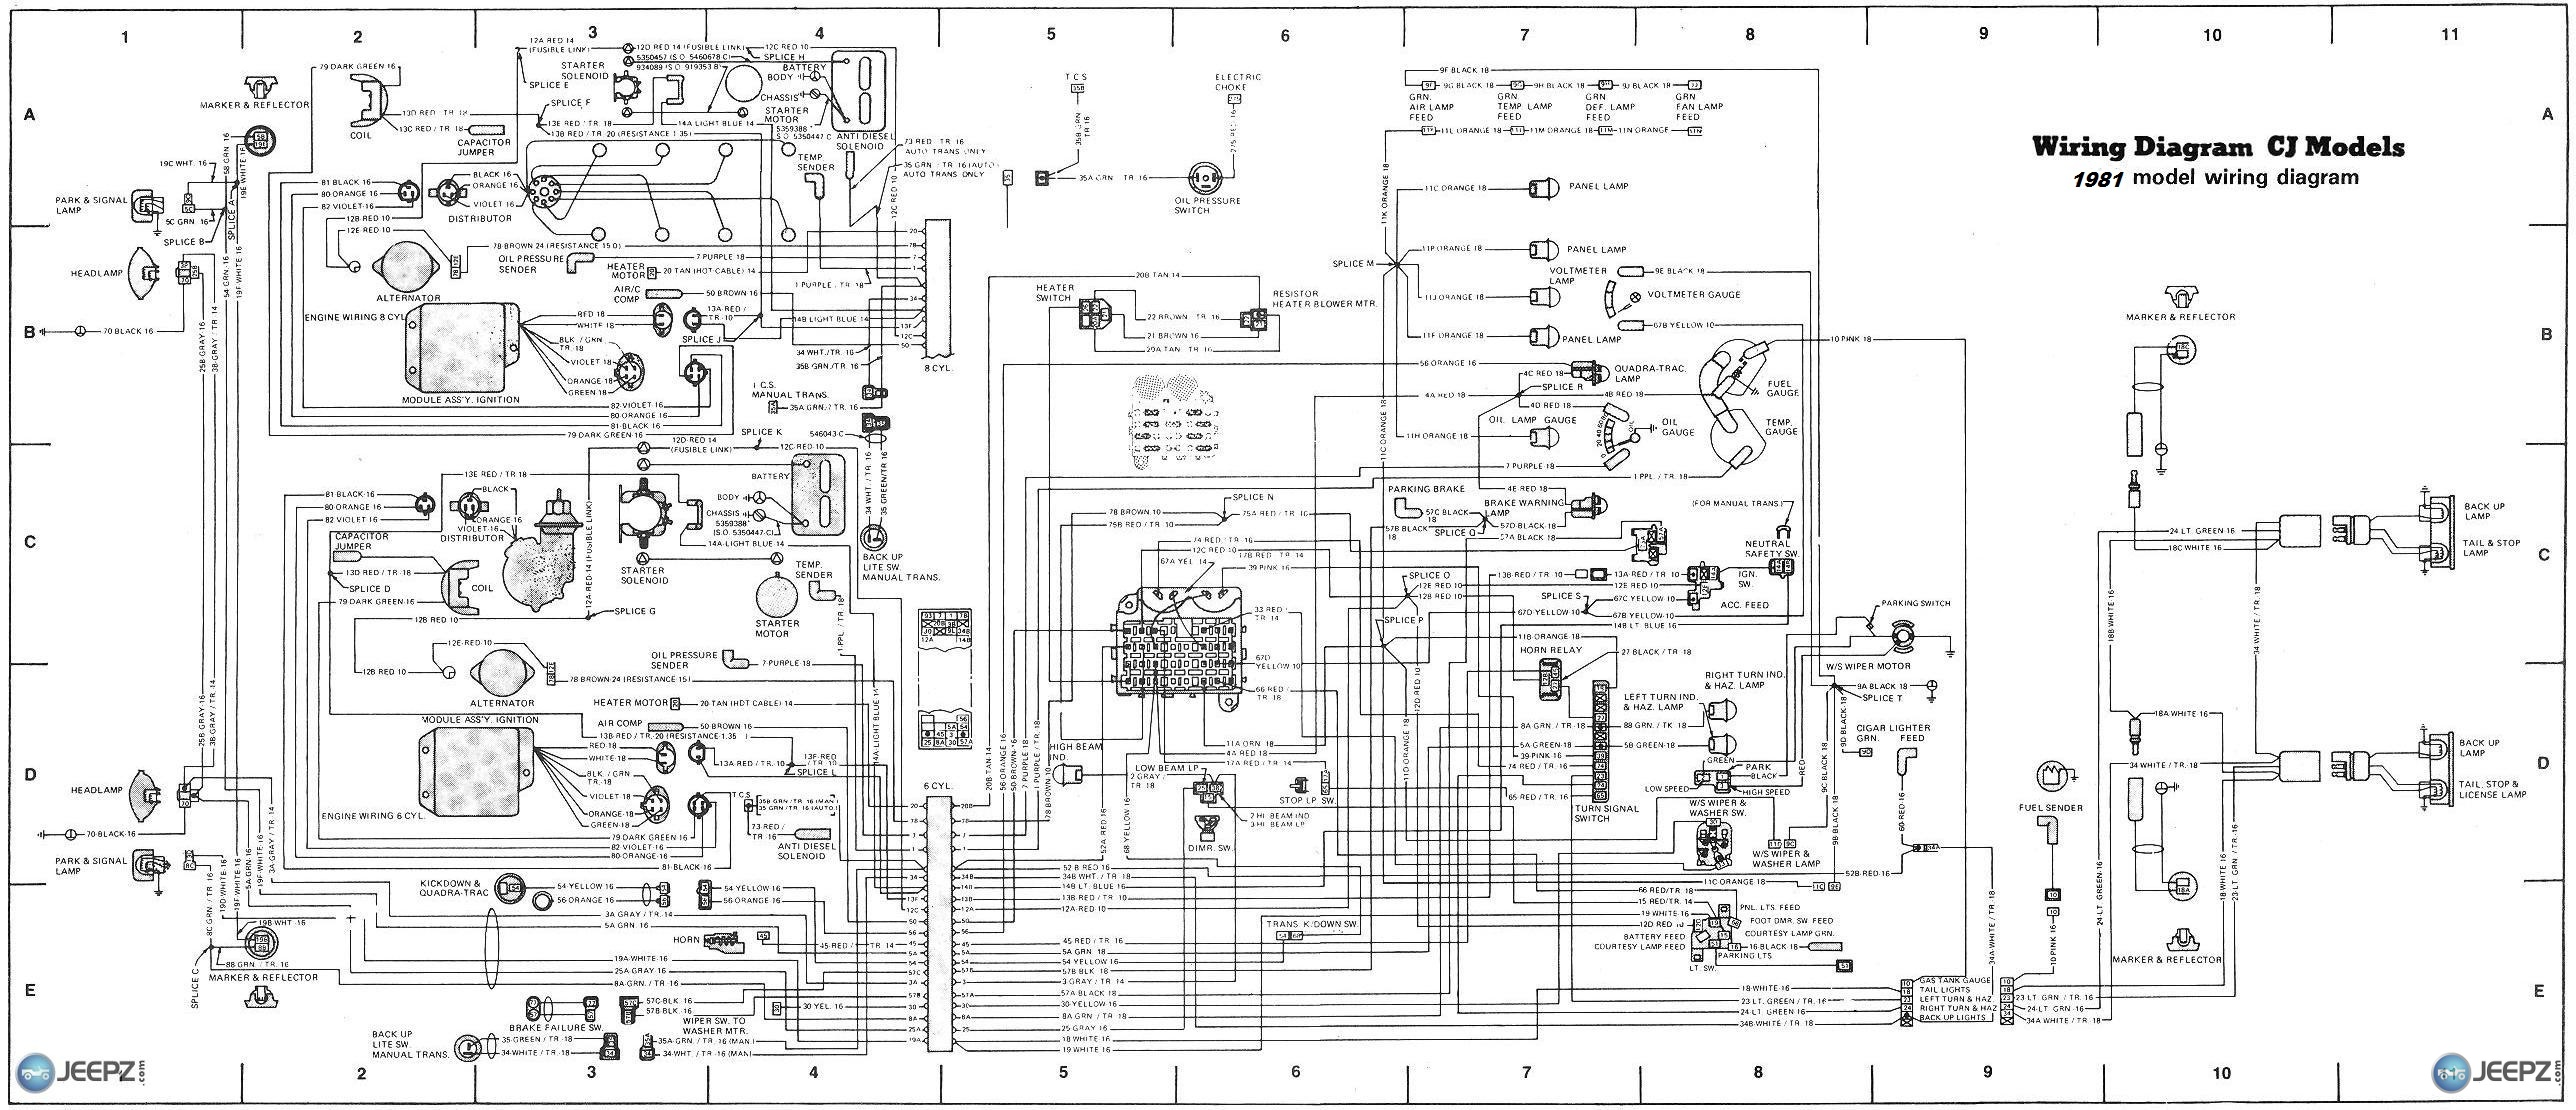 cj5 wiring diagram wiring diagram g11 rh 5 kidrt craft attack de